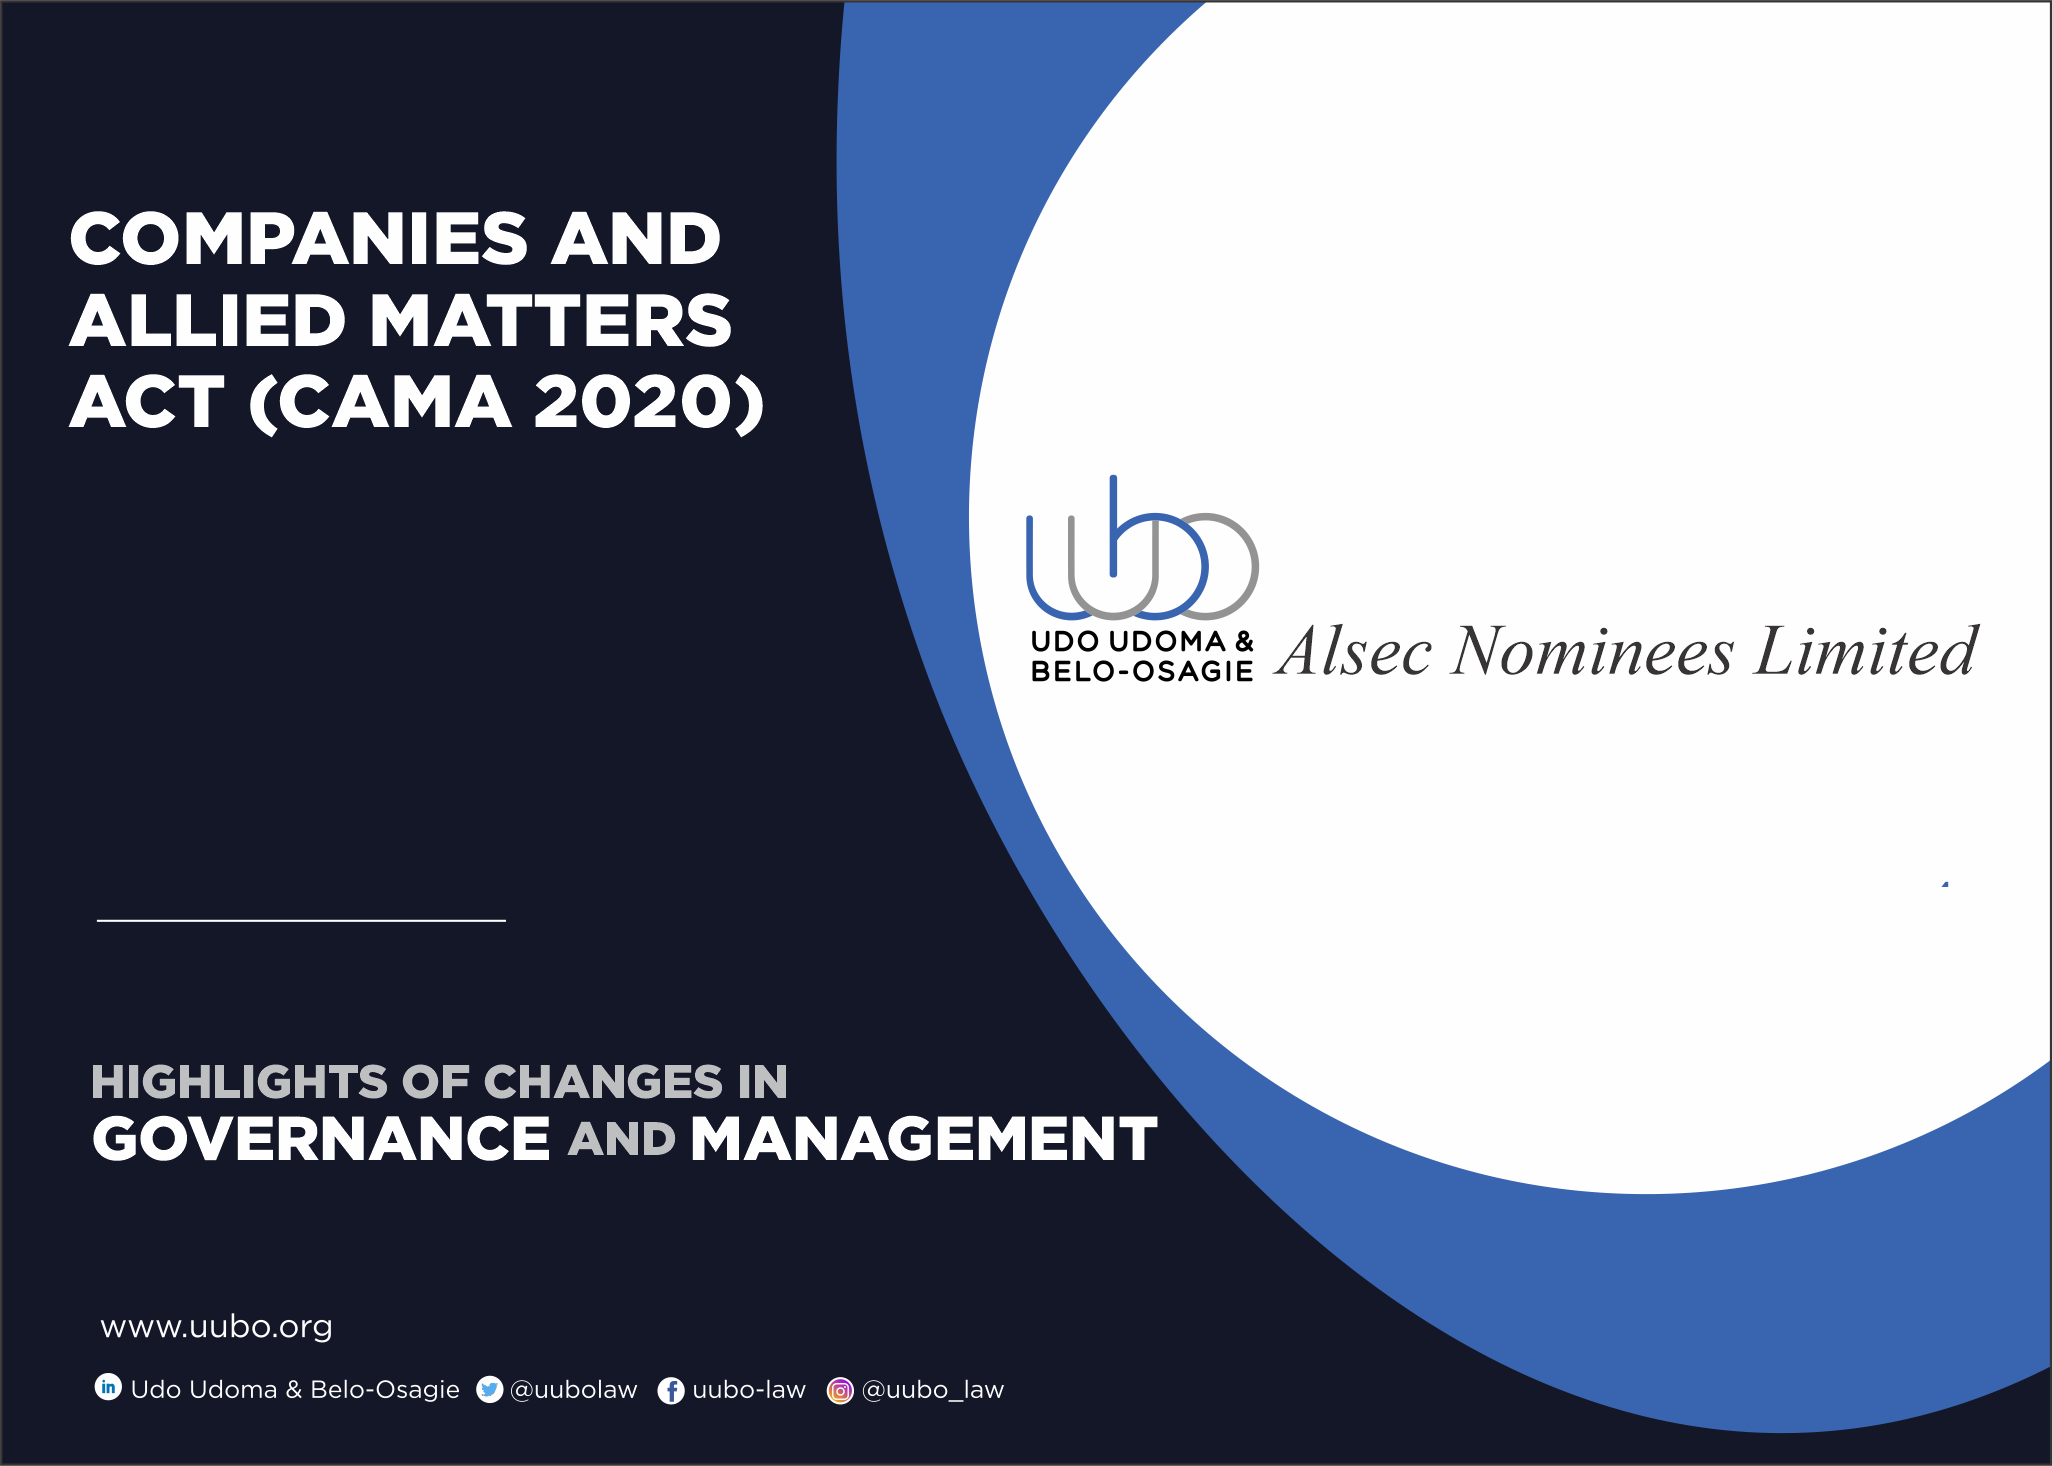 CAMA 2020 HIGHLIGHTS OF CHANGES IN GOVERNANCE AND MANAGEMENT